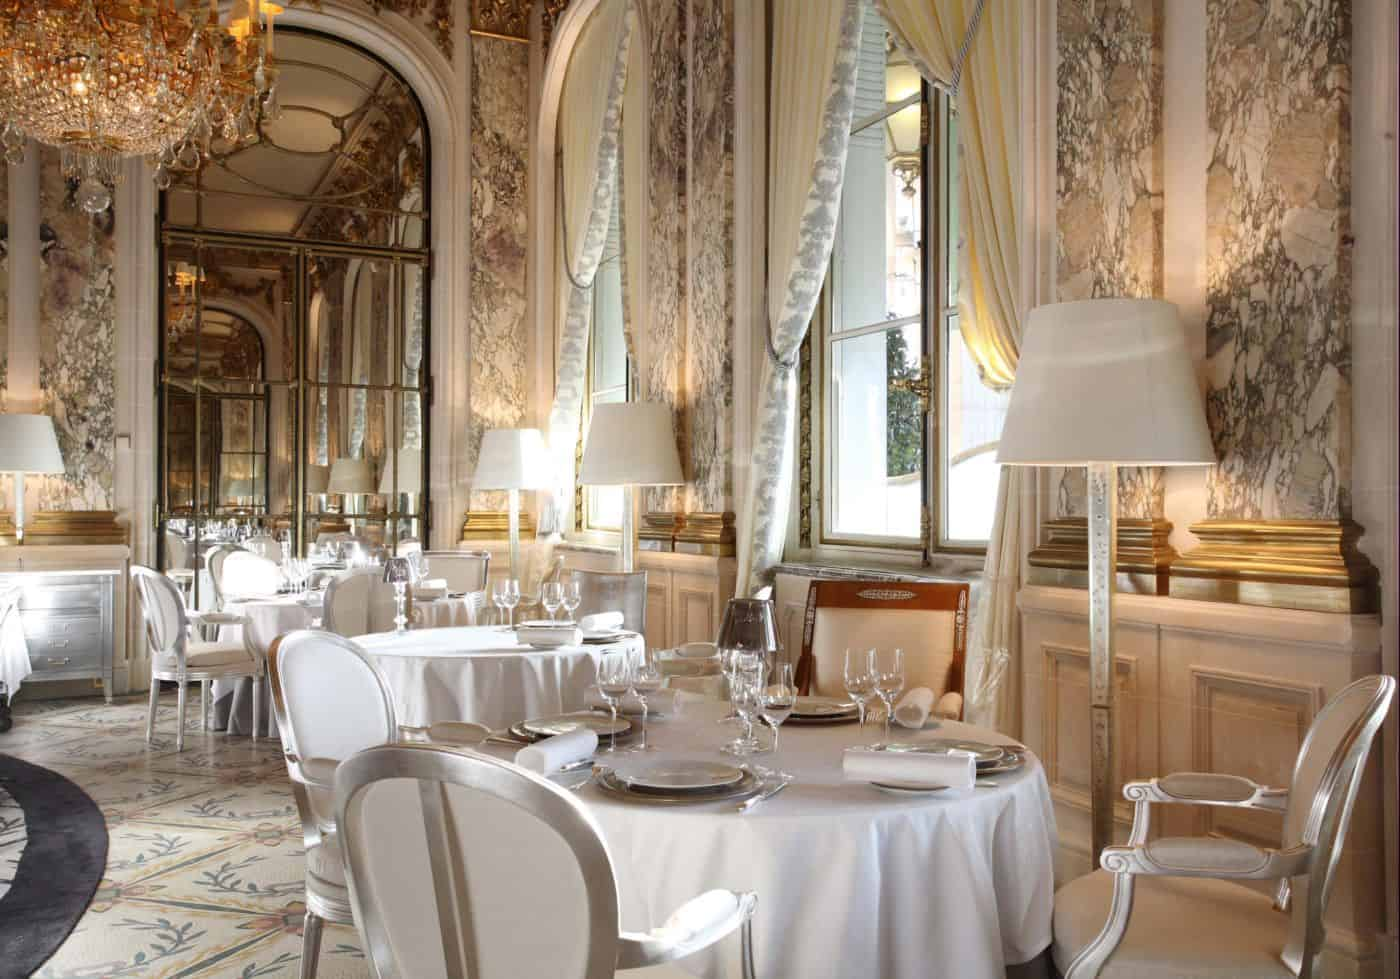 Best restaurants in paris france beverly hills magazine for Paris restaurant